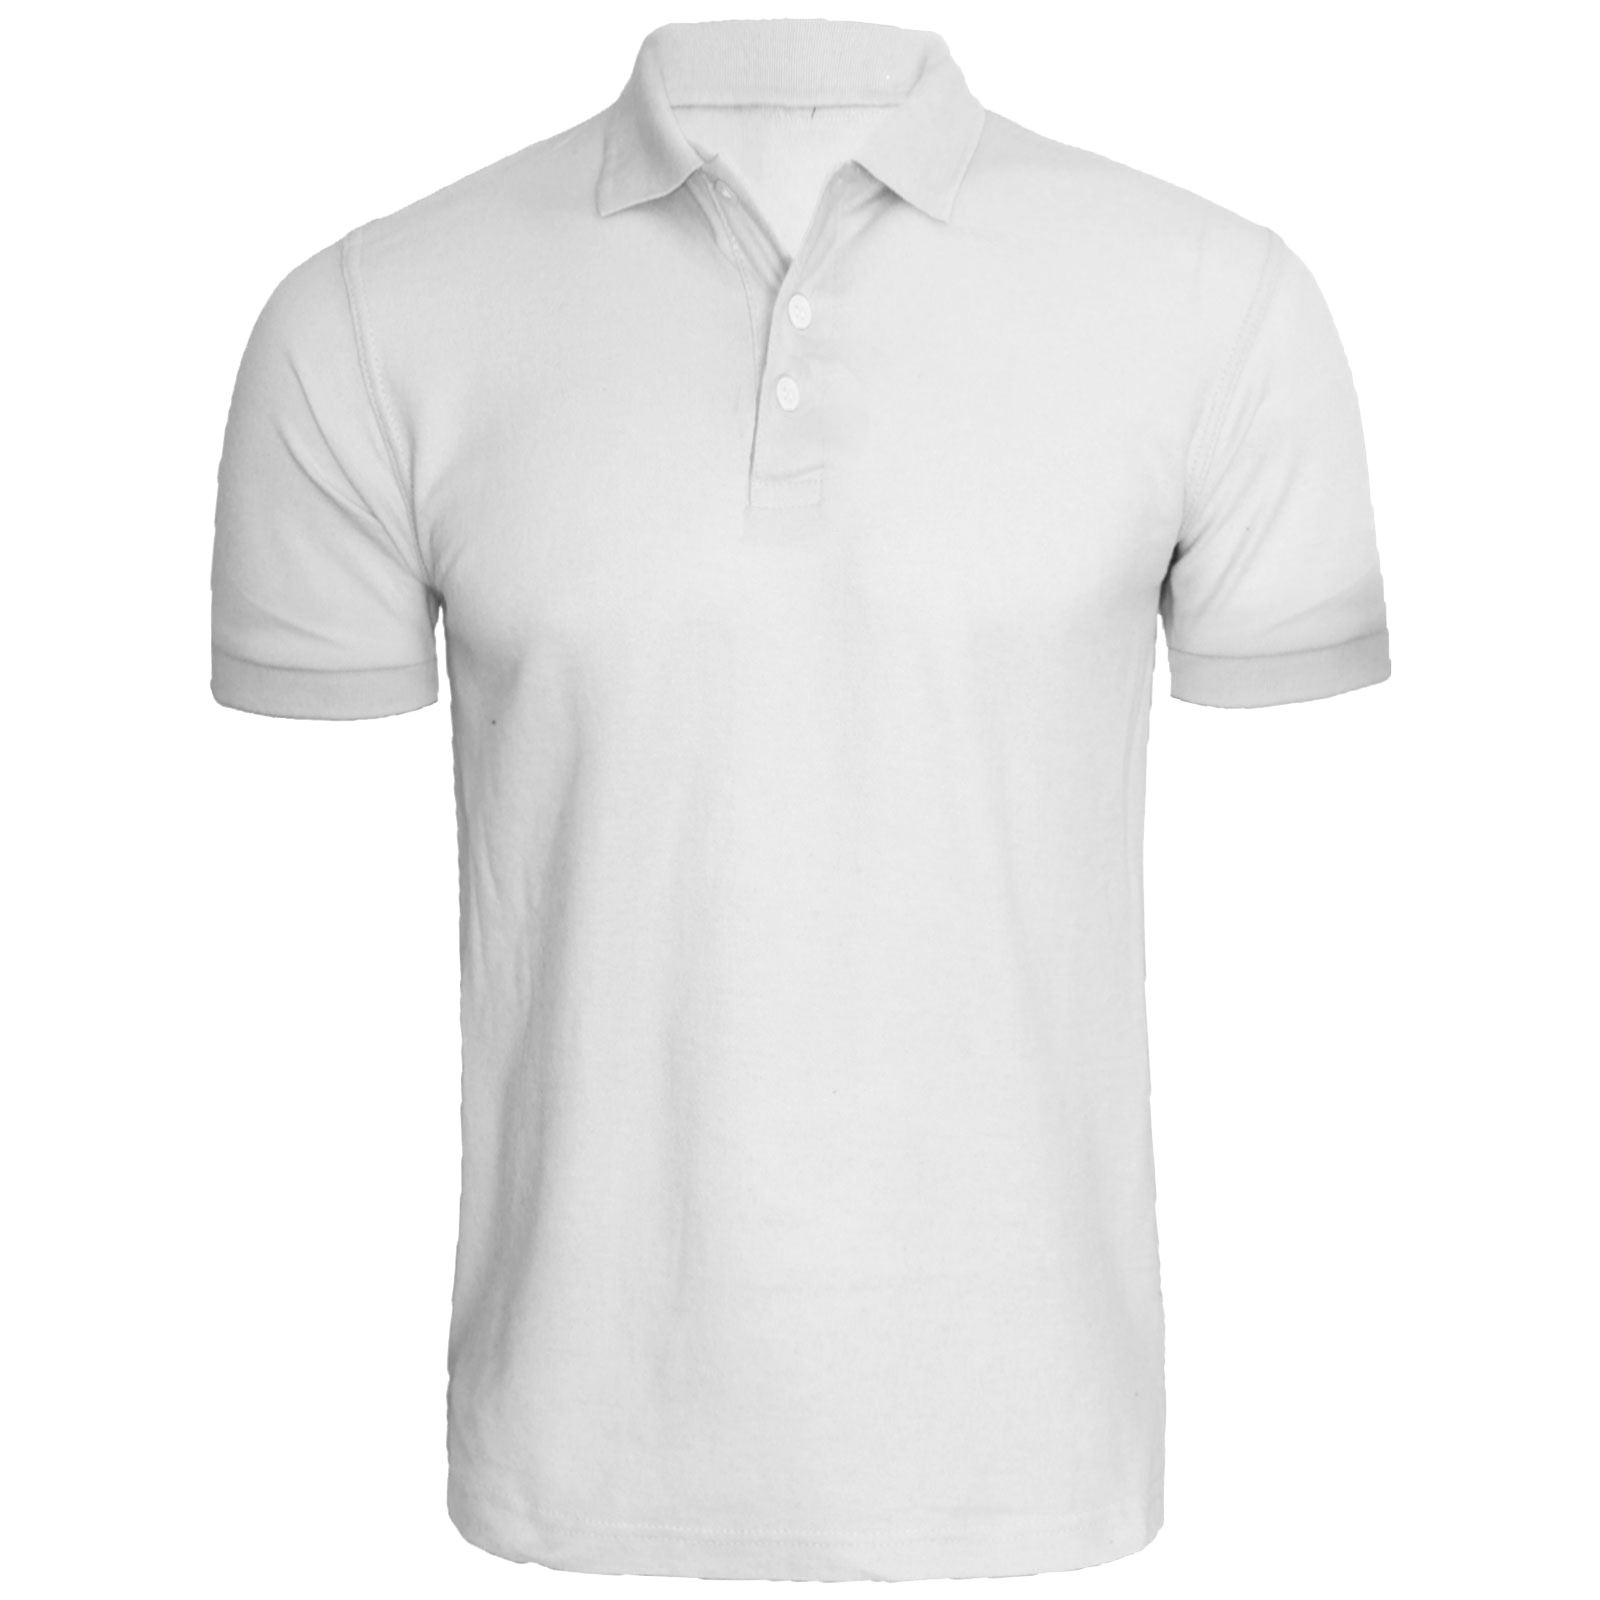 b168d698bf Maiden Beech White Polo Shirt unbranded same quality with logo – Jazziez